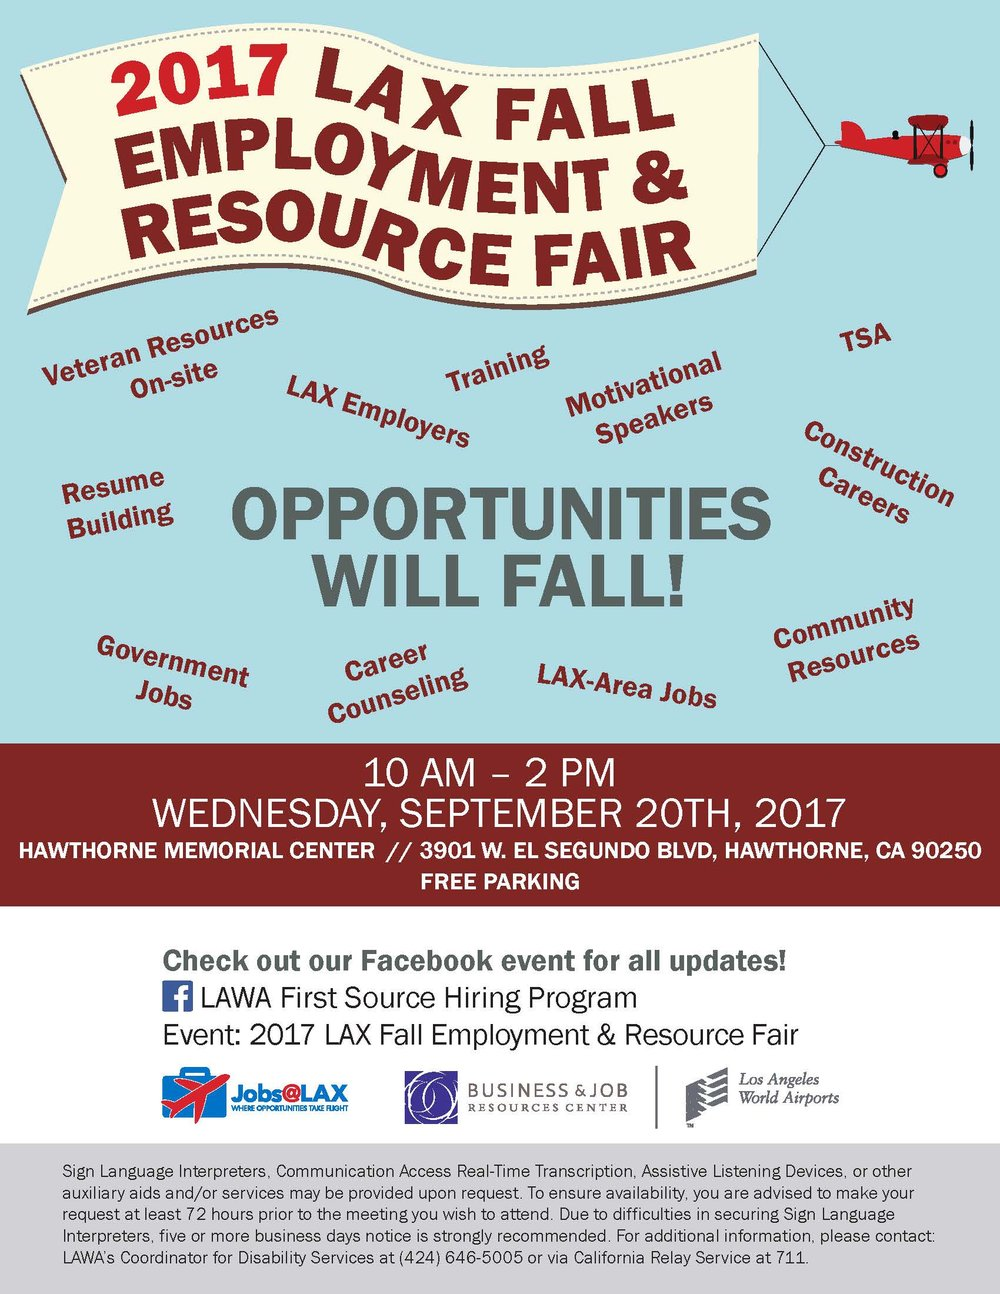 2017 LAX Fall Employment & Resource Fair